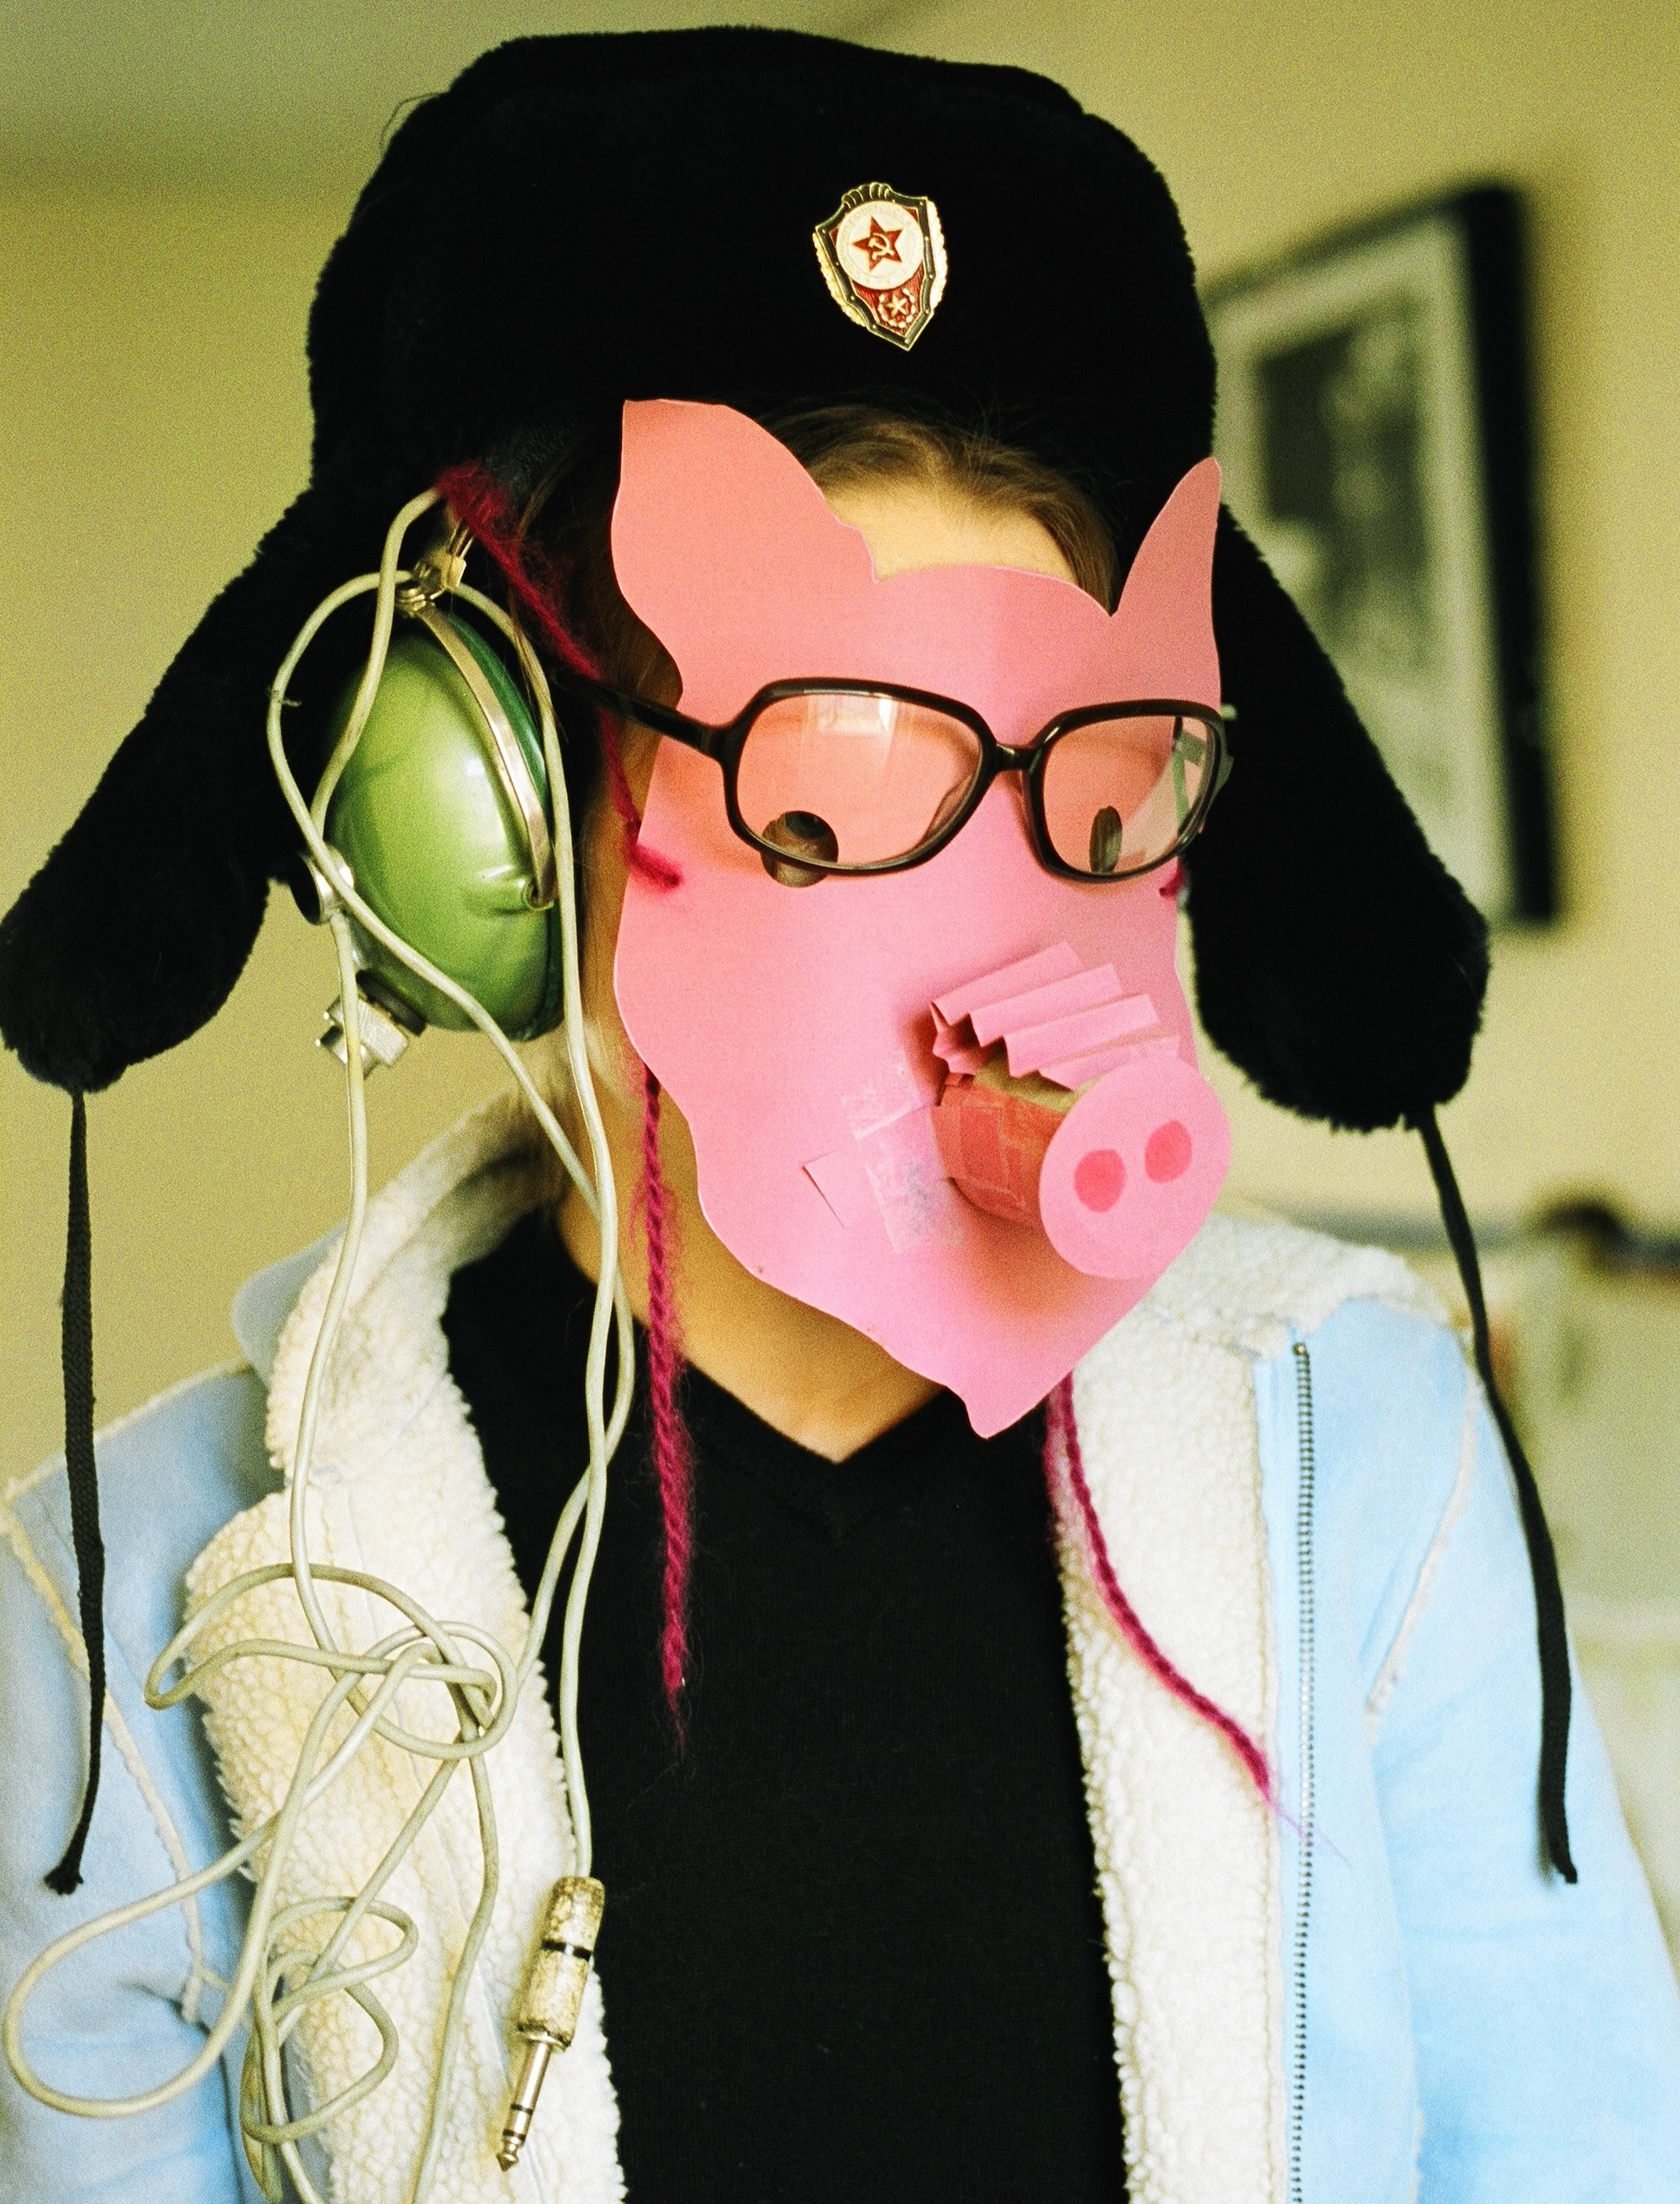 A previous incarnation - Pig Masks crafted with artists Andrew Jones and Holly De Las Casas inn summer 2003.